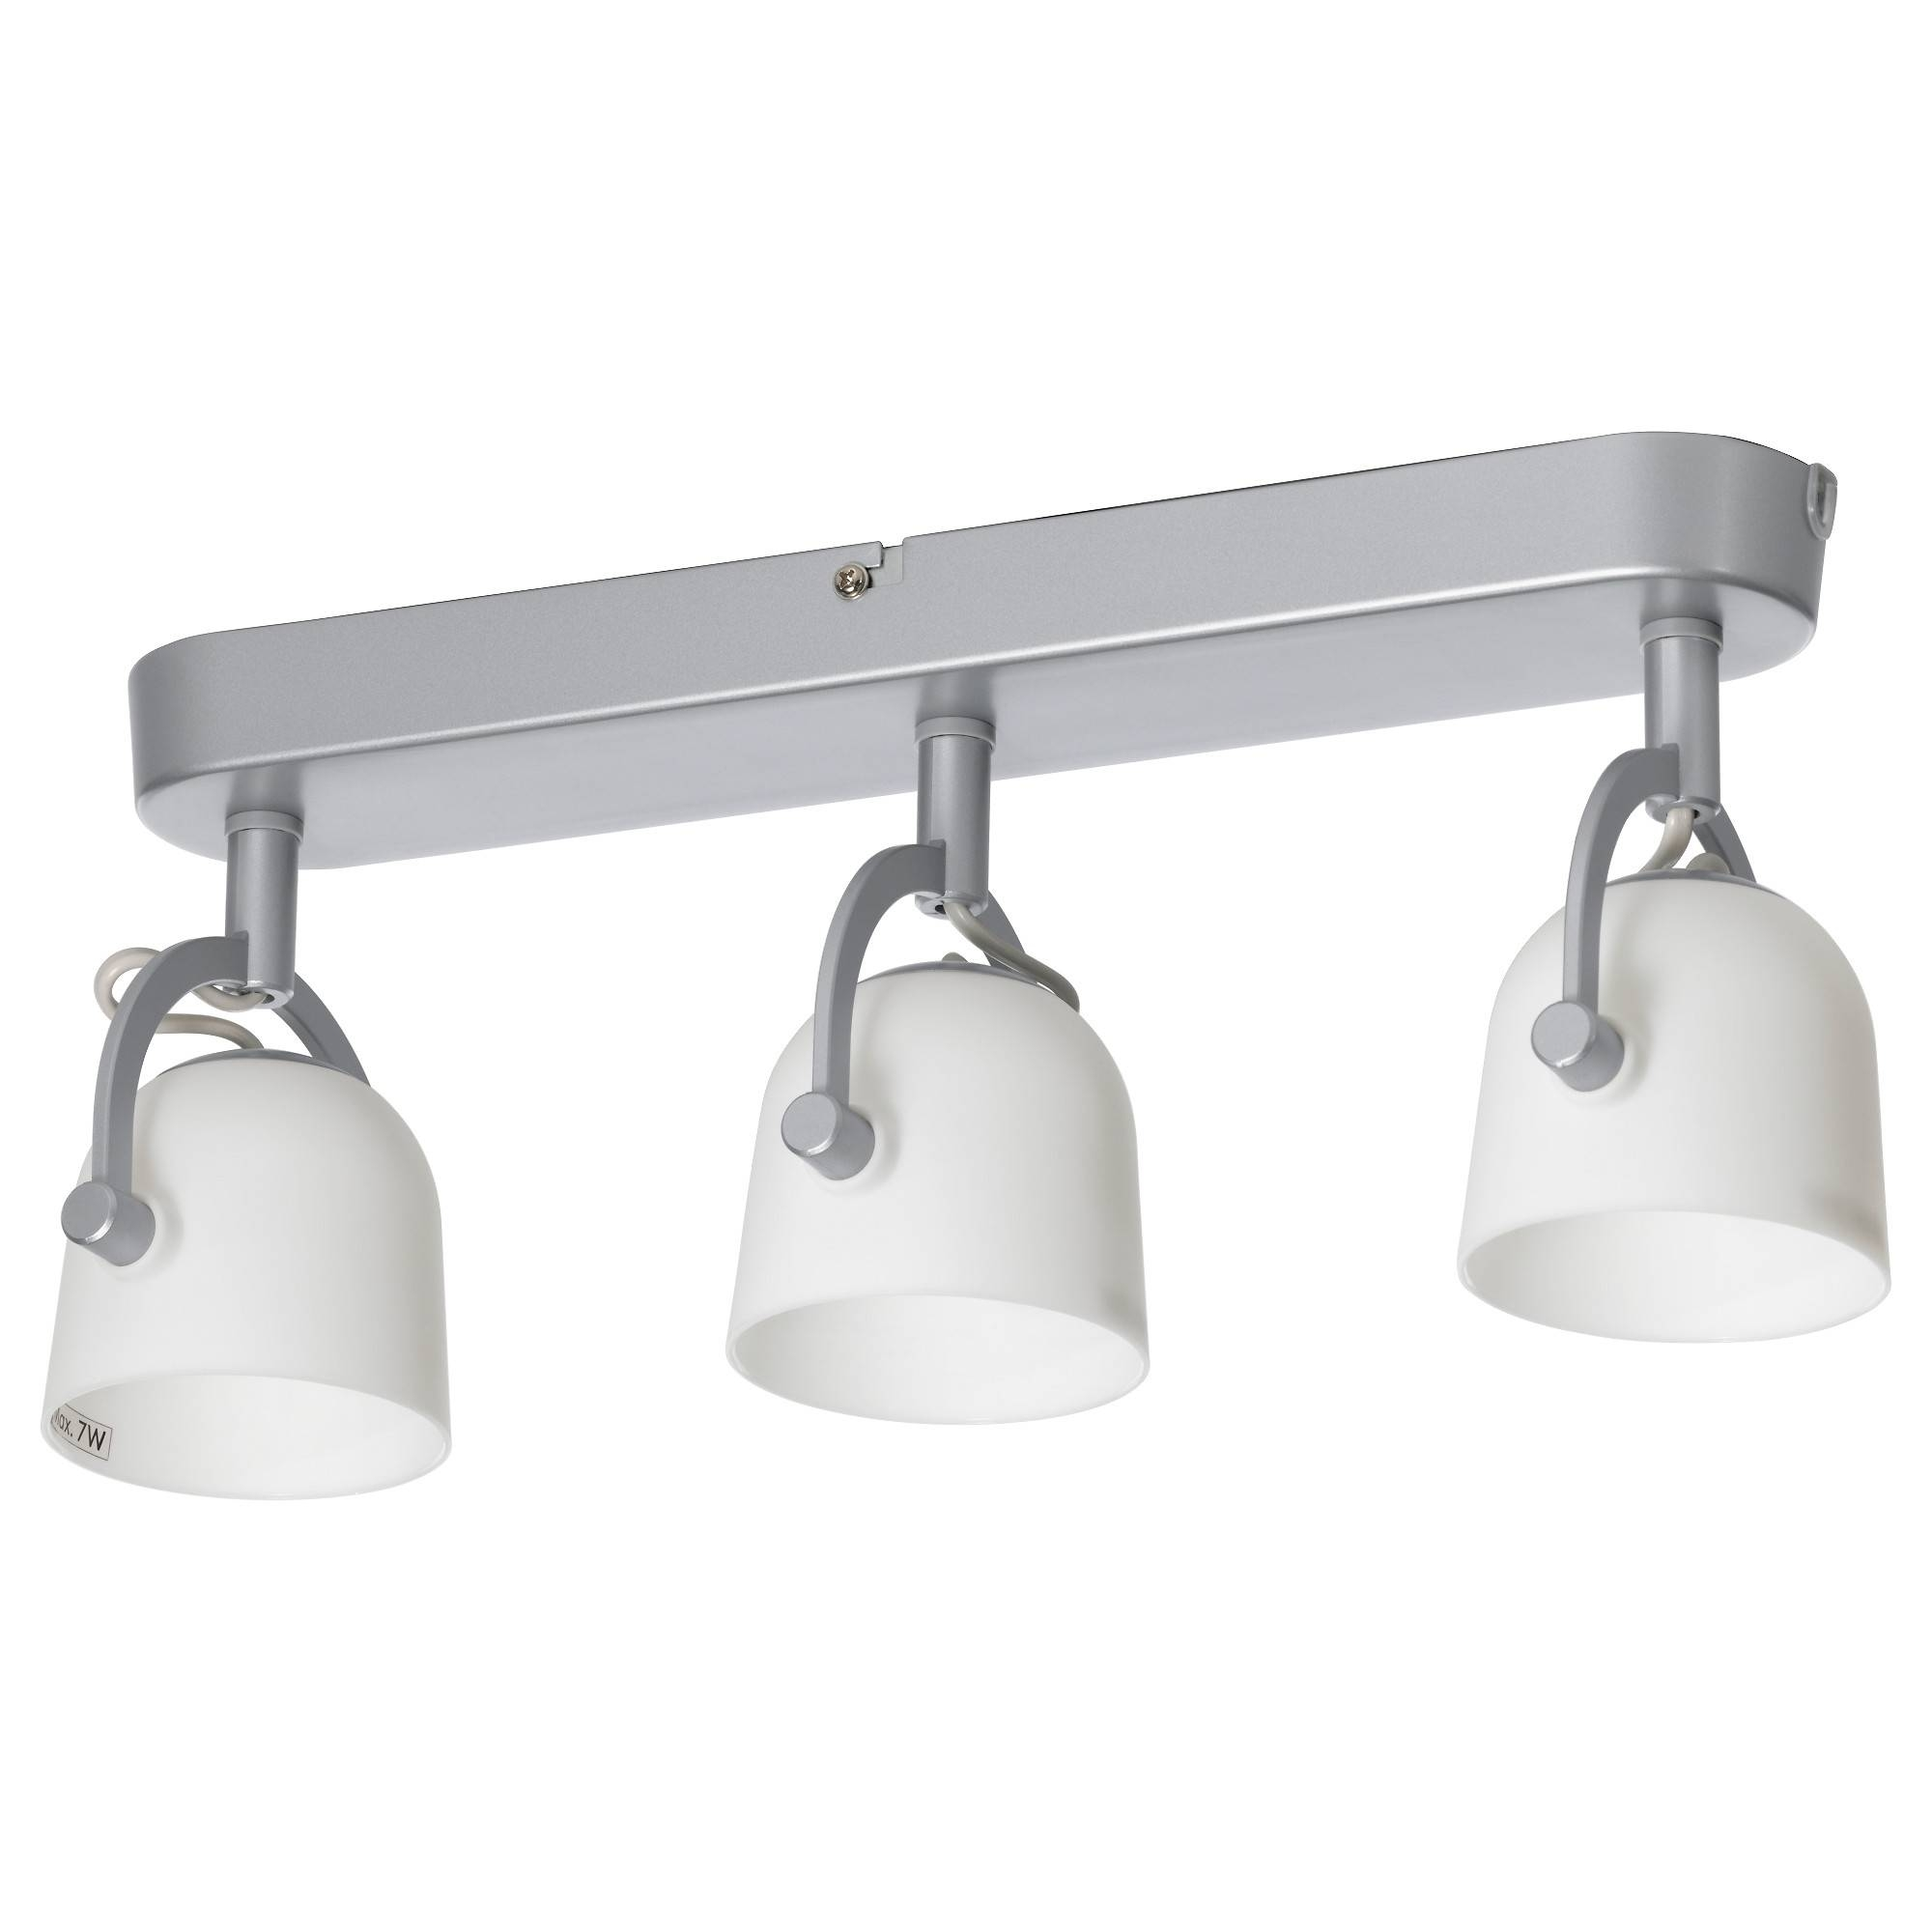 Ceiling Lights & Lamps – Ikea For Ikea Recessed Lighting (View 2 of 15)